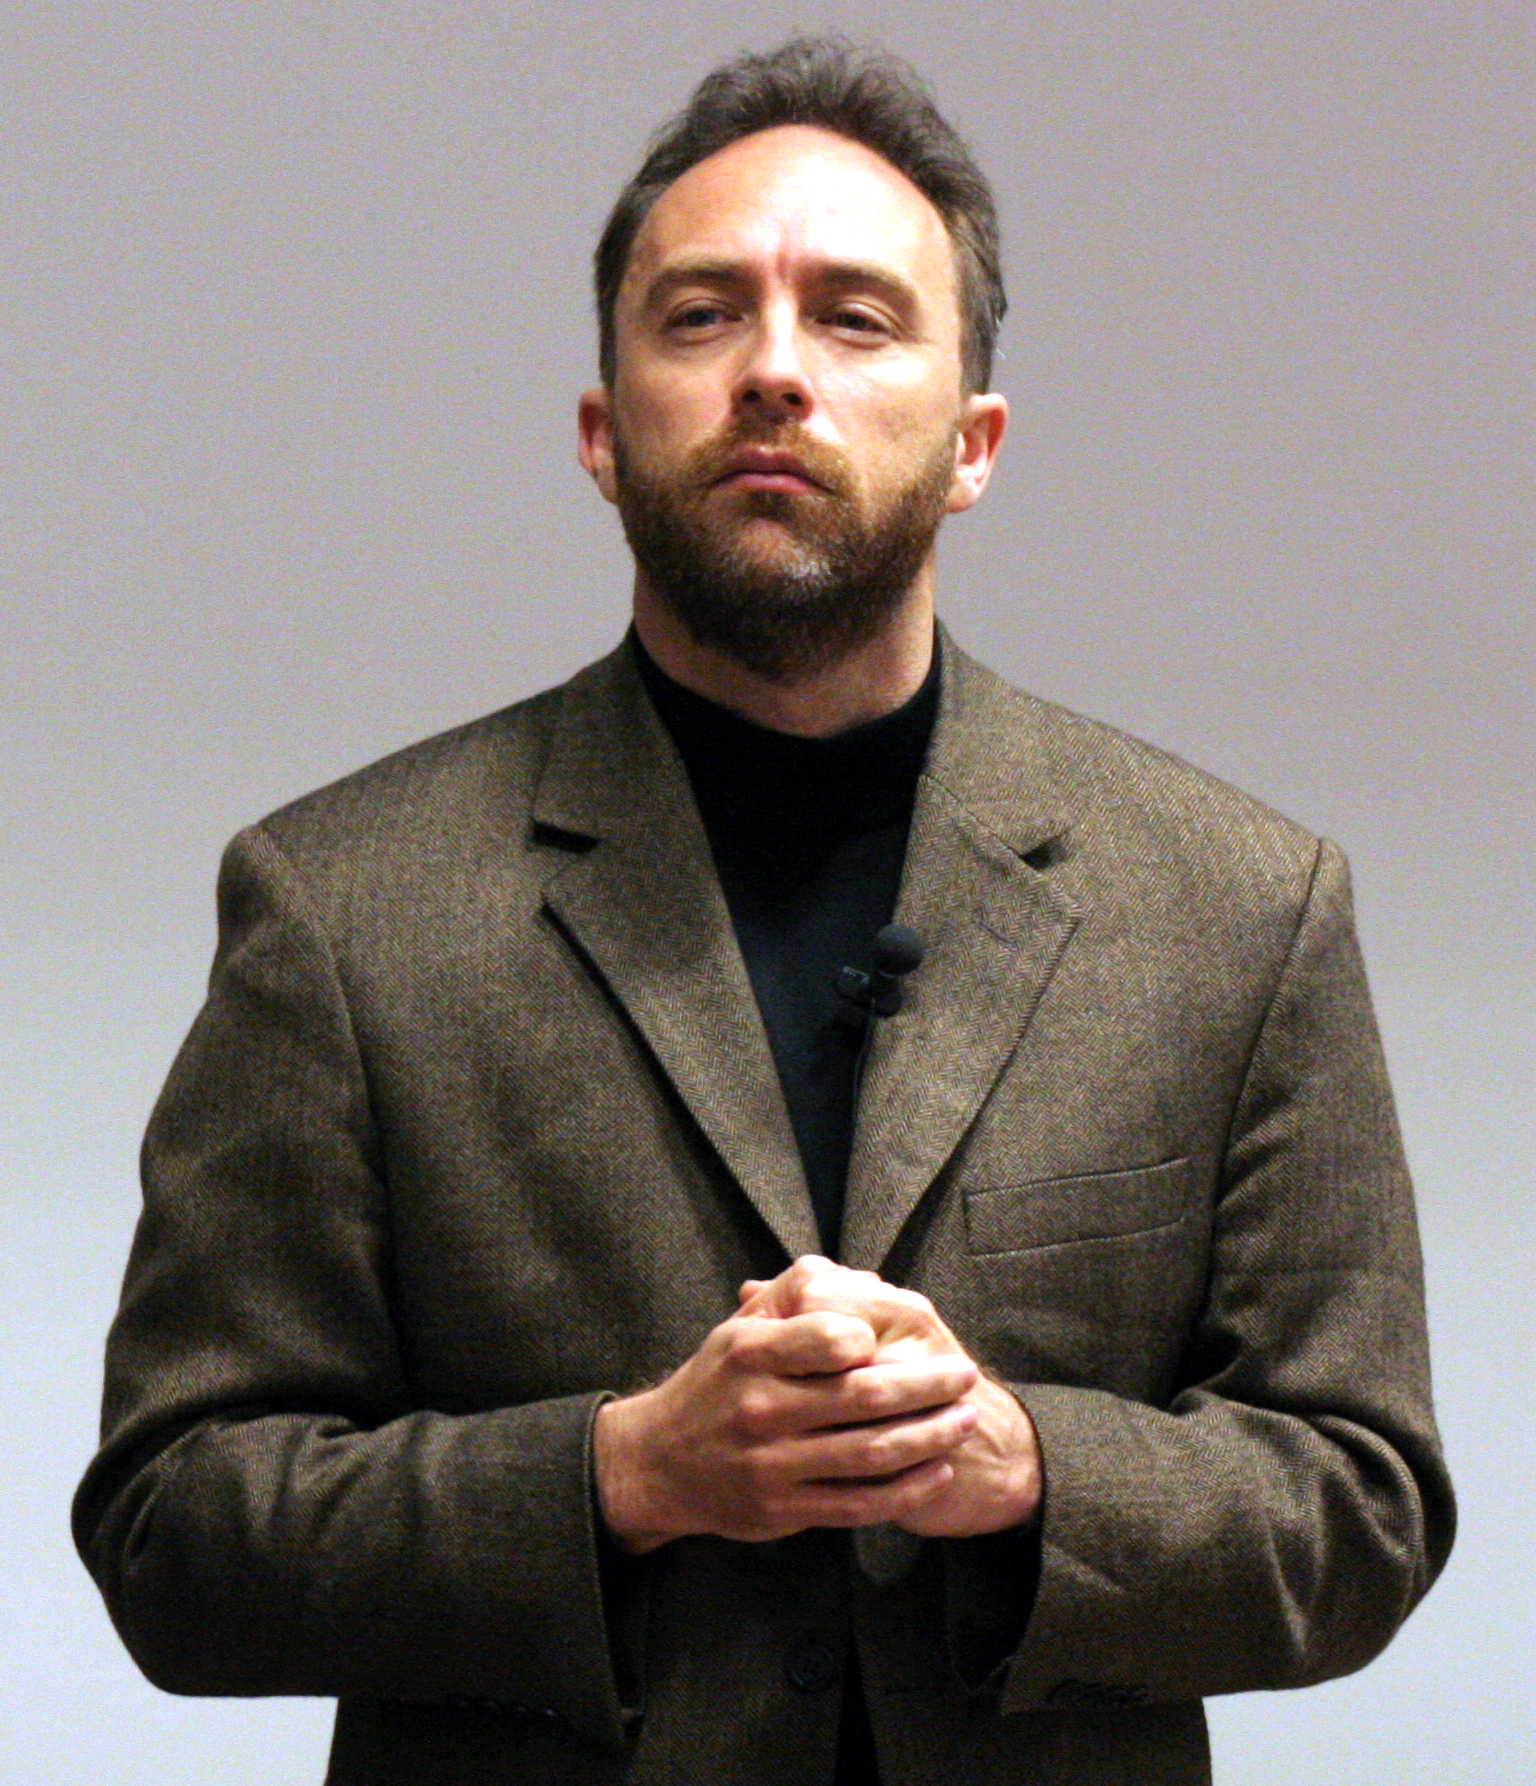 Jimbo at Fosdem cropped.jpg